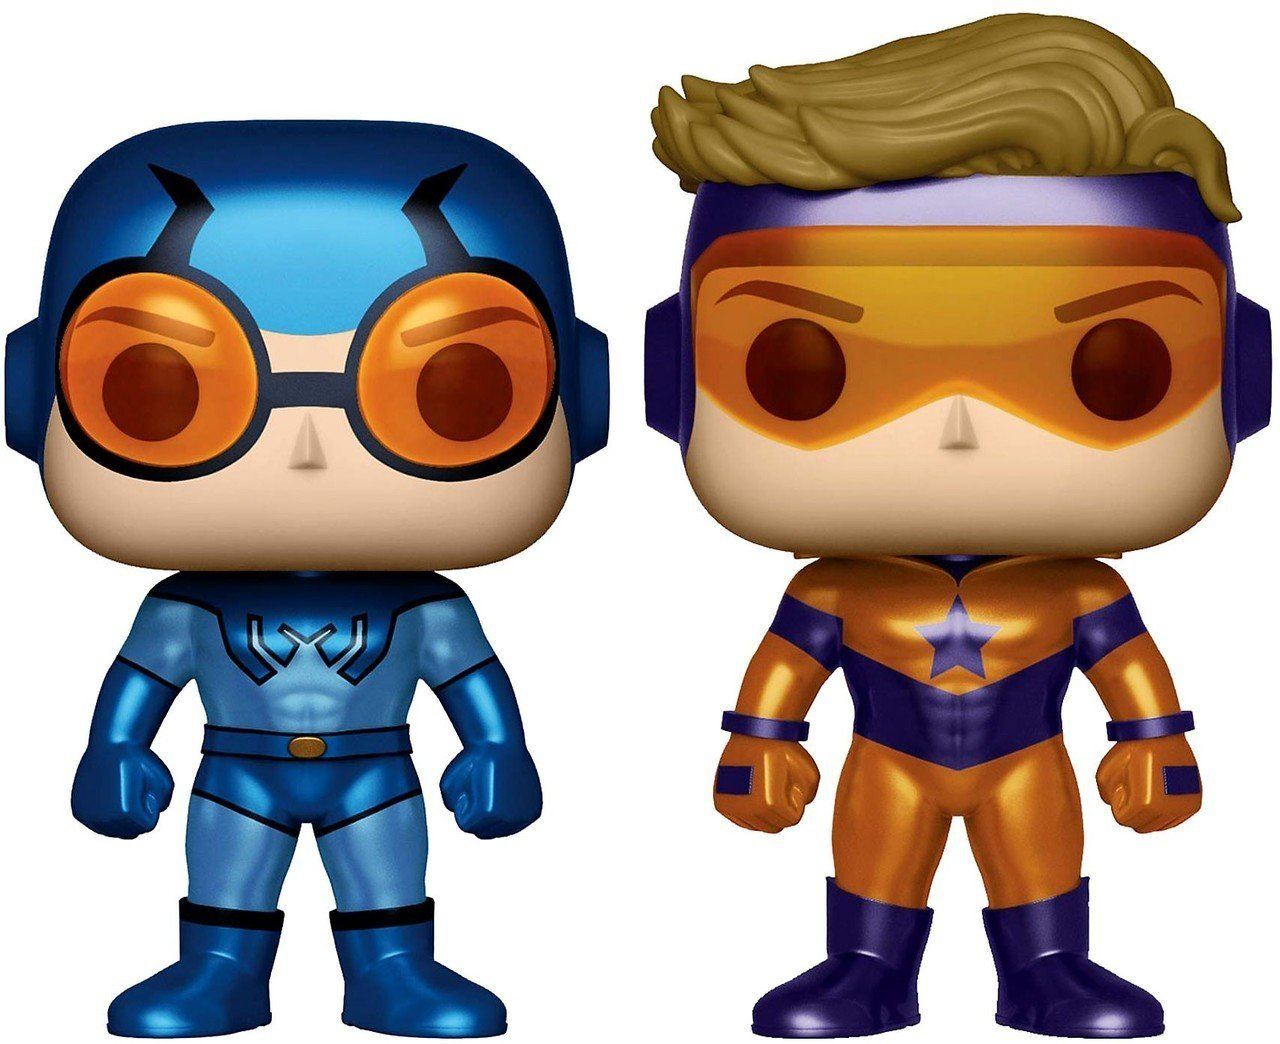 Funko DC Universe Booster Gold and Blue Beetle 2-Pack Exclusive Pop! Vinyl Figure